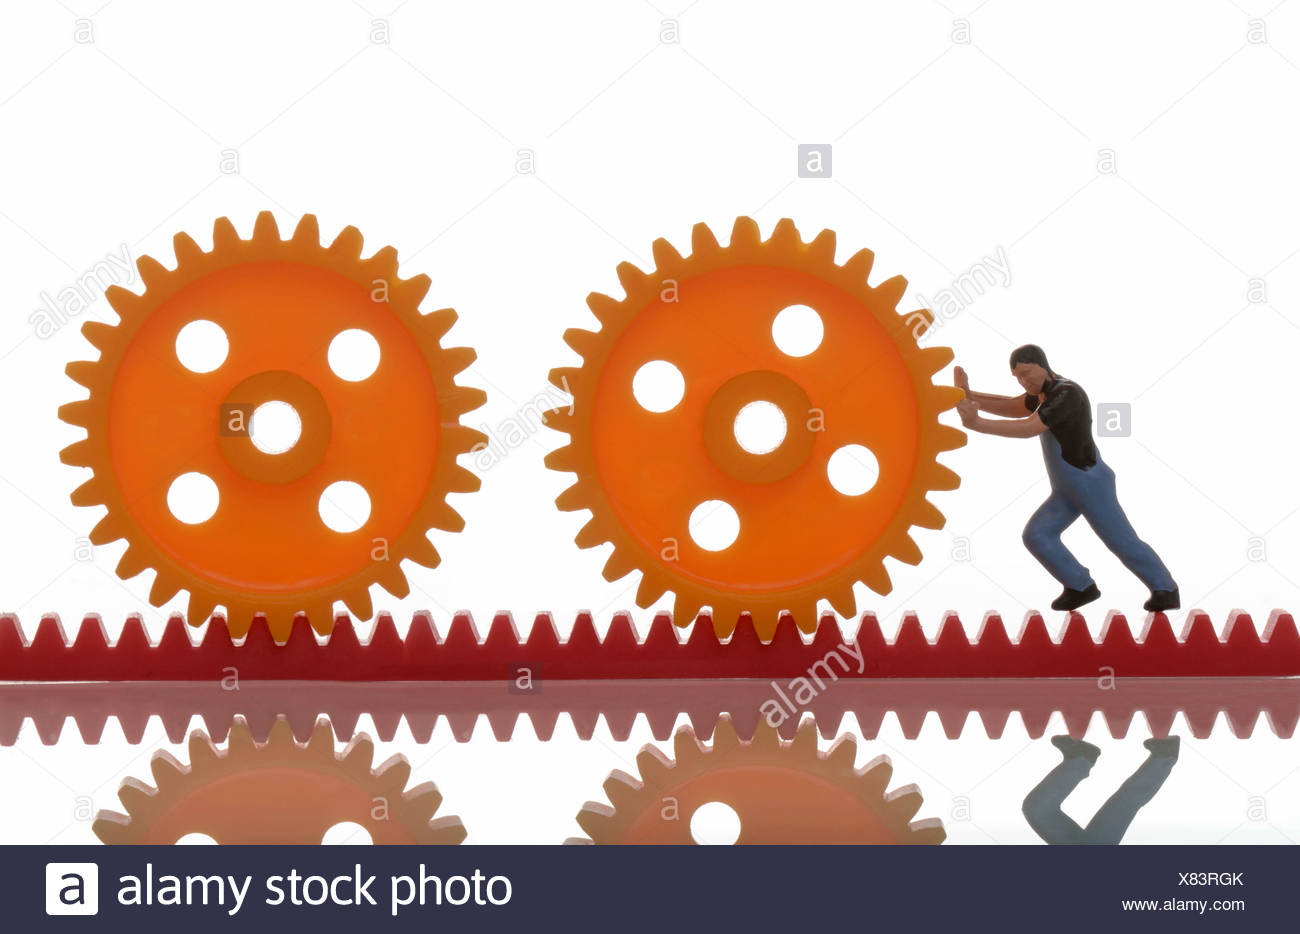 Small figurine of a workman pushing cog wheels together, symbolic image - Stock Image